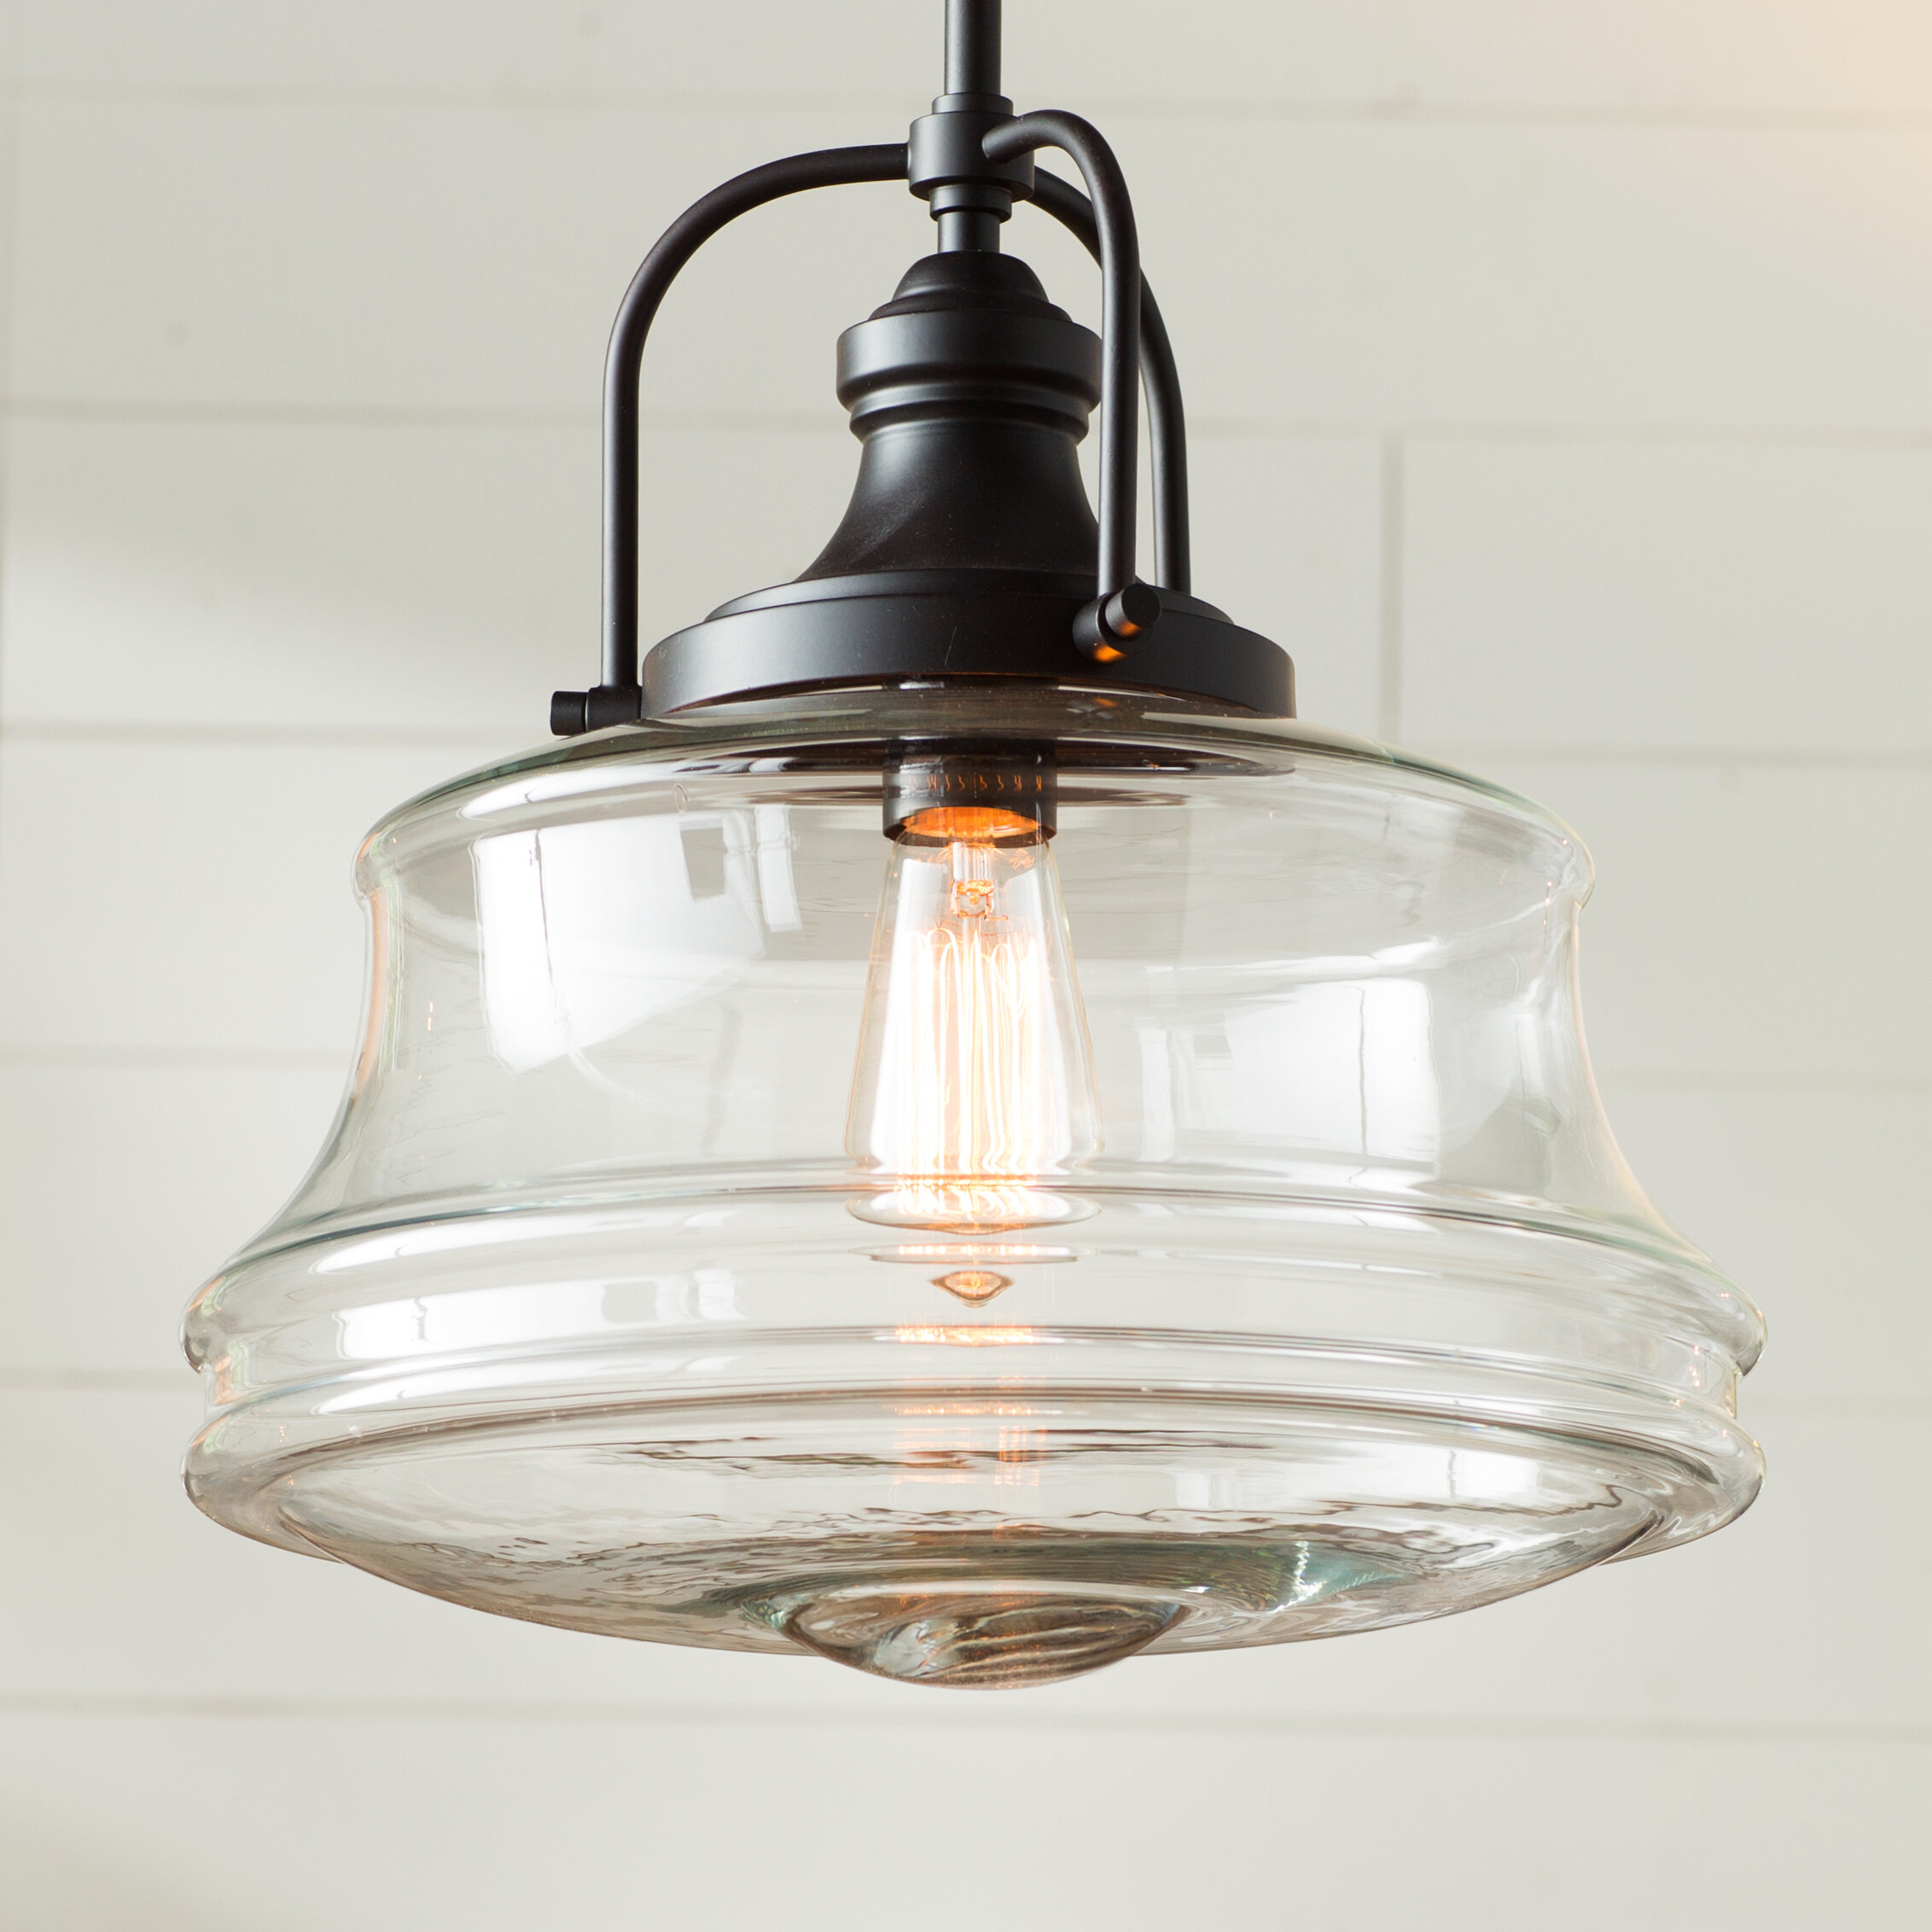 Industrial pendant lights youll love wayfair nadine 1 light schoolhouse pendant aloadofball Gallery